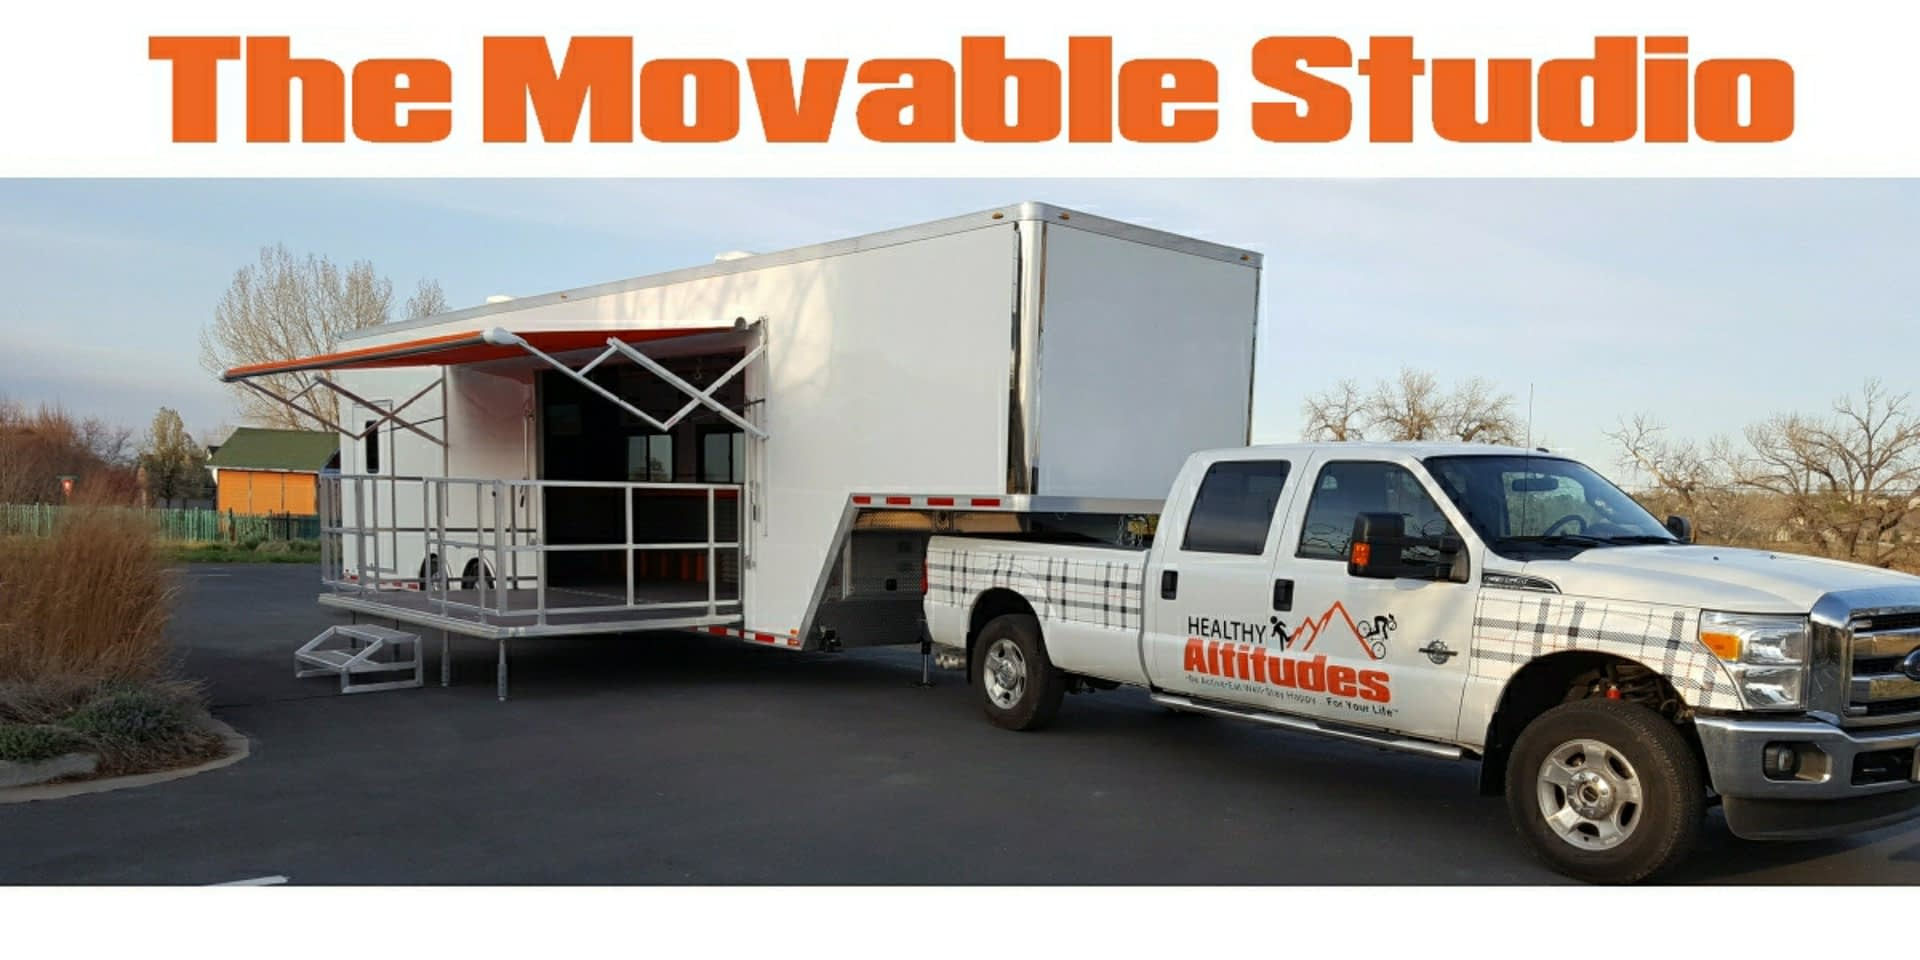 Mobile Fitness Studio